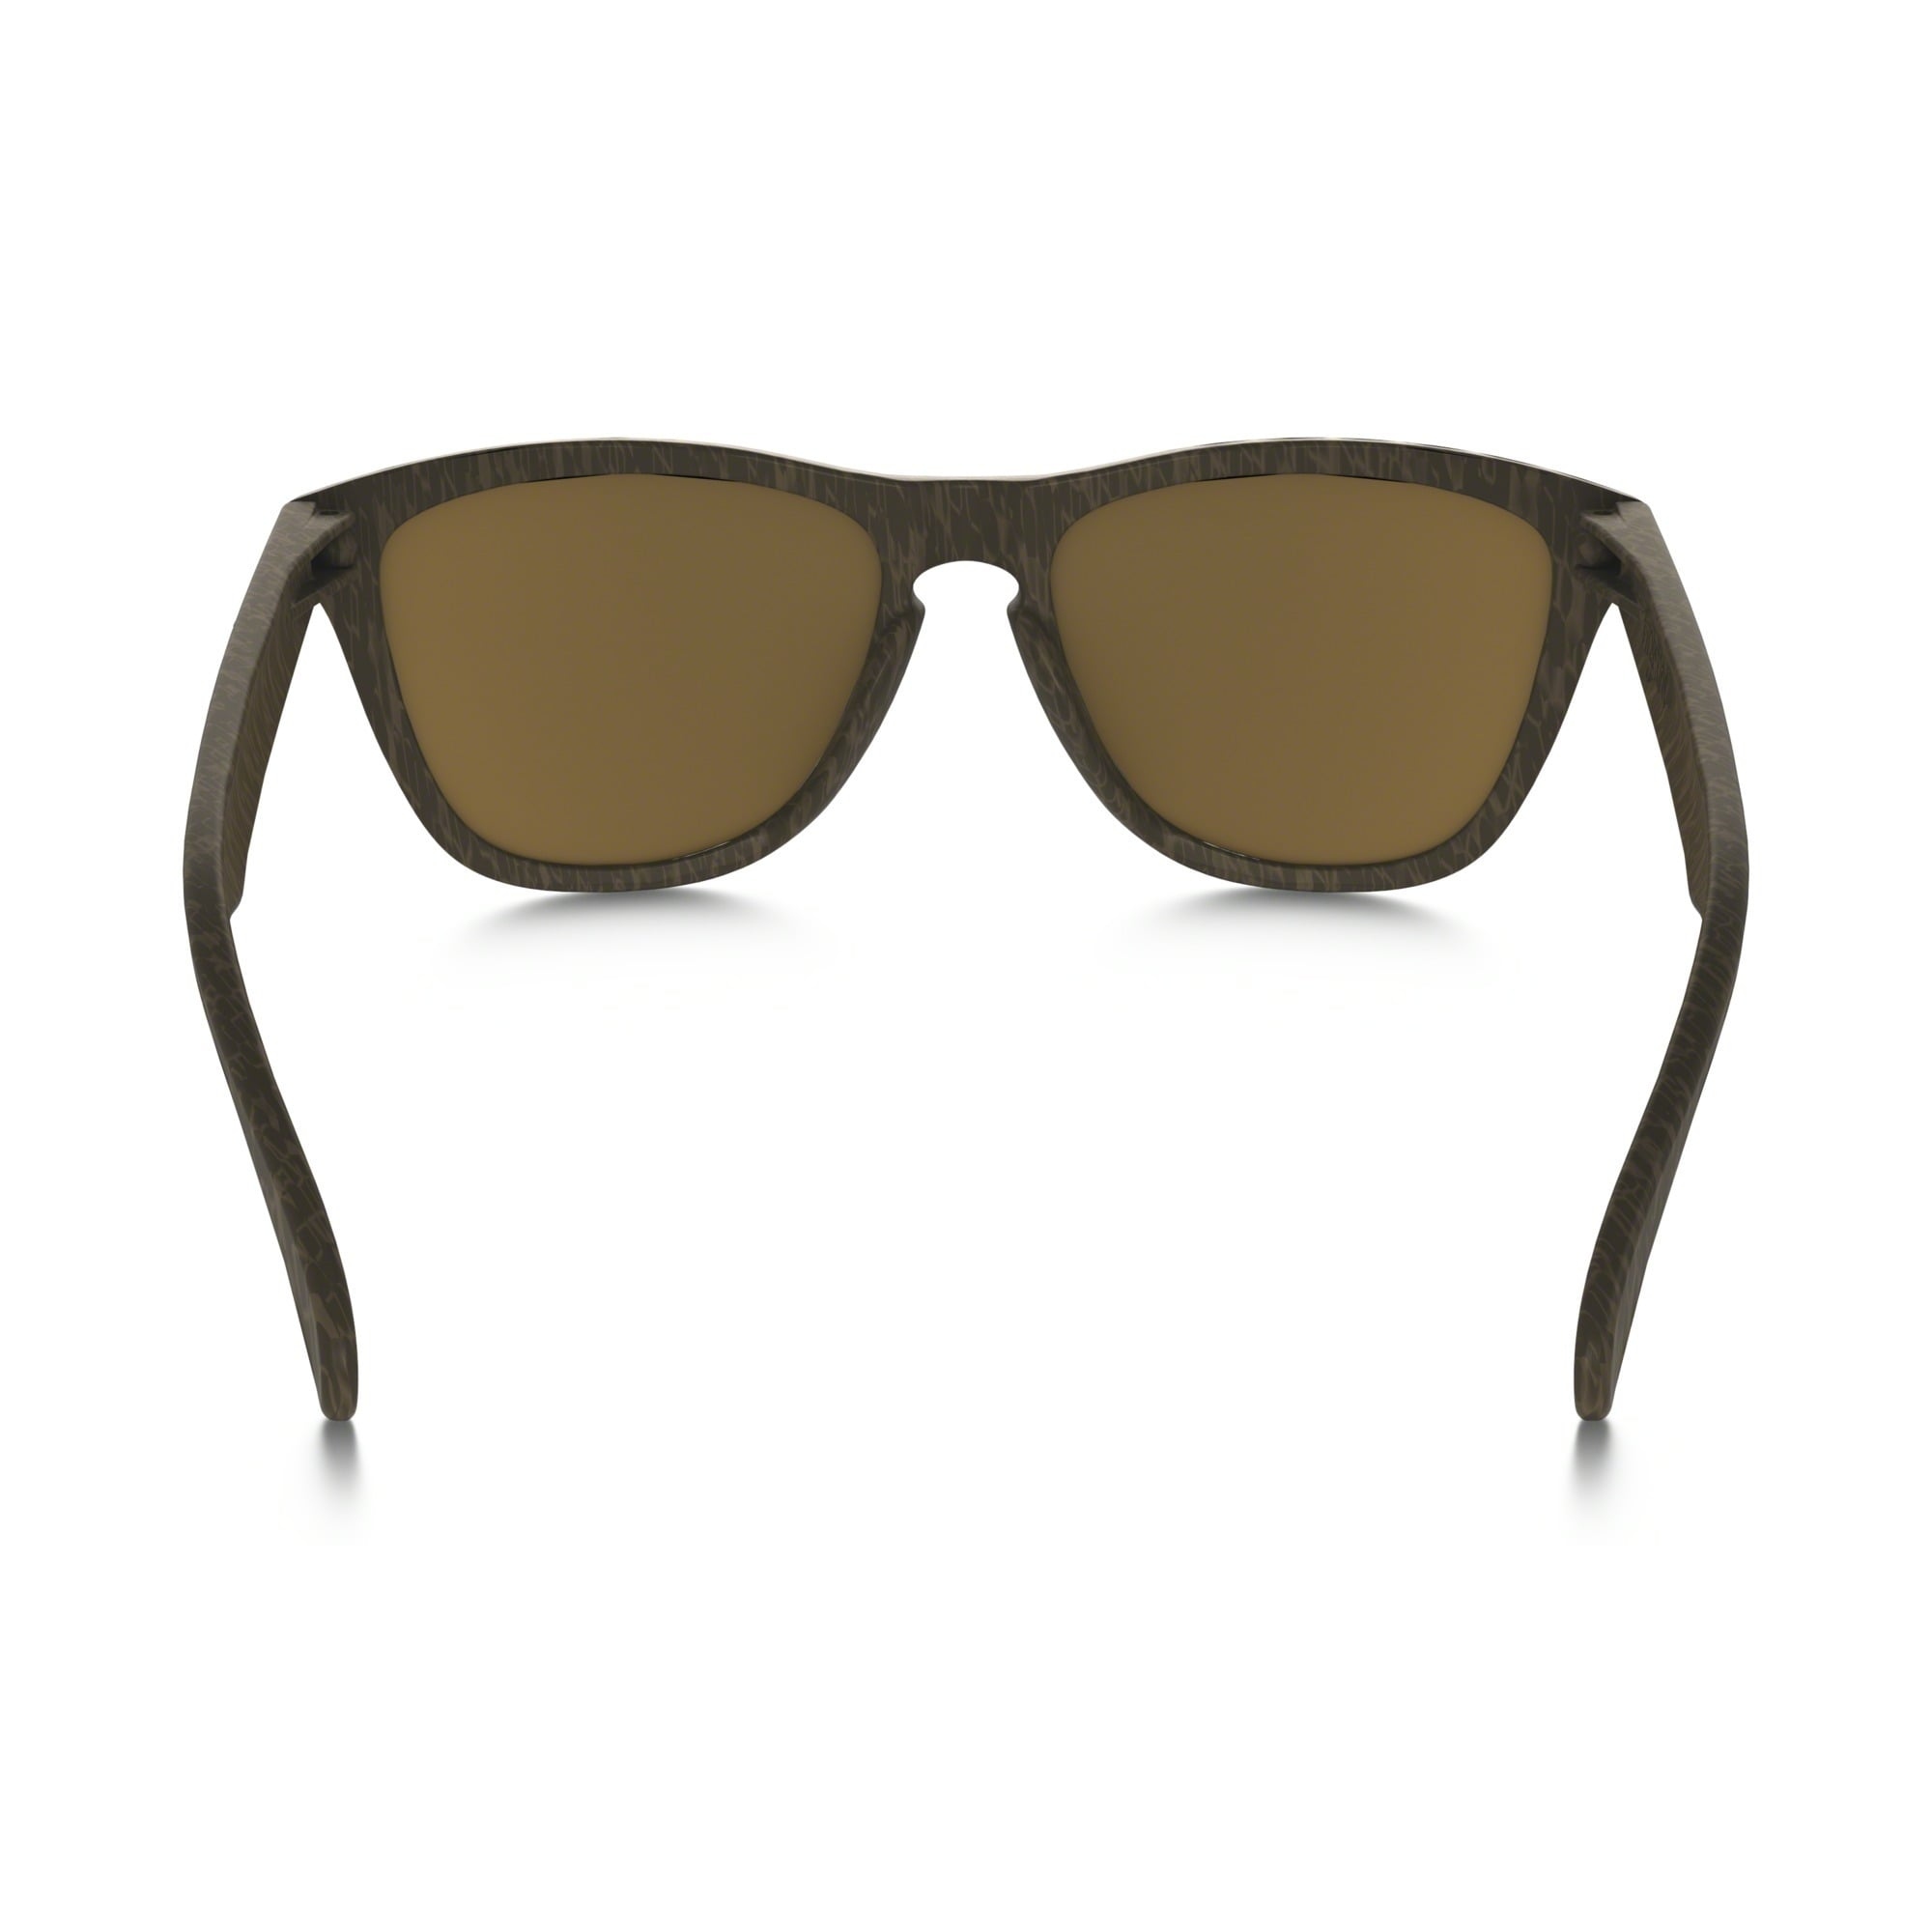 3c85feb65e3 Shop Oakley Men s OO9245-29 Frogskins Tobacco Frame Dark Bronze 54mm Lens  Sunglasses - Free Shipping Today - Overstock - 13787757